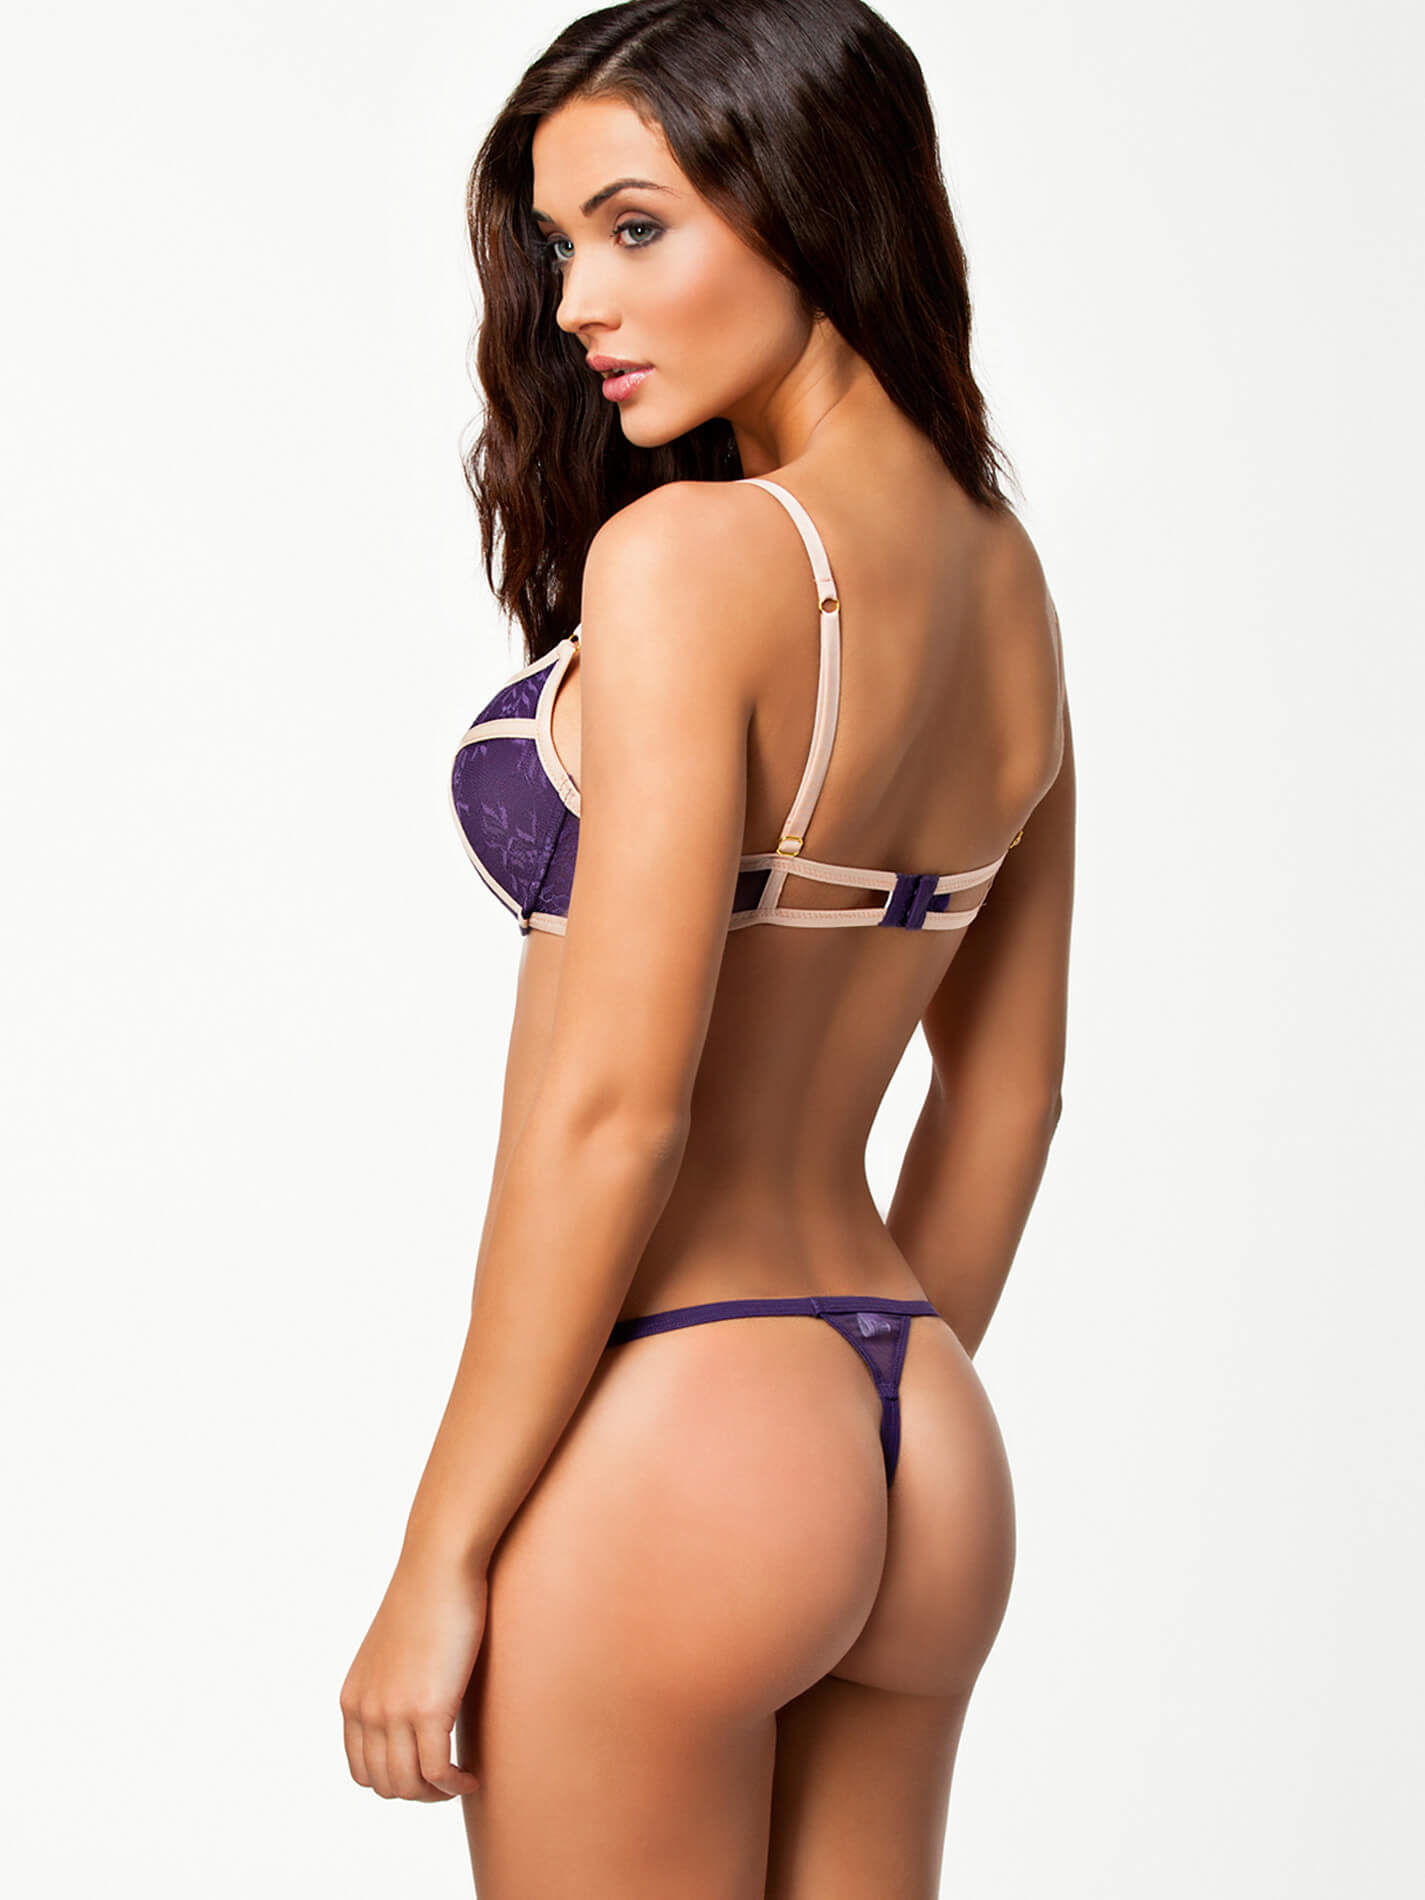 Allamericanamy Jackson 49 hottest amy jackson big butt pictures will make you want